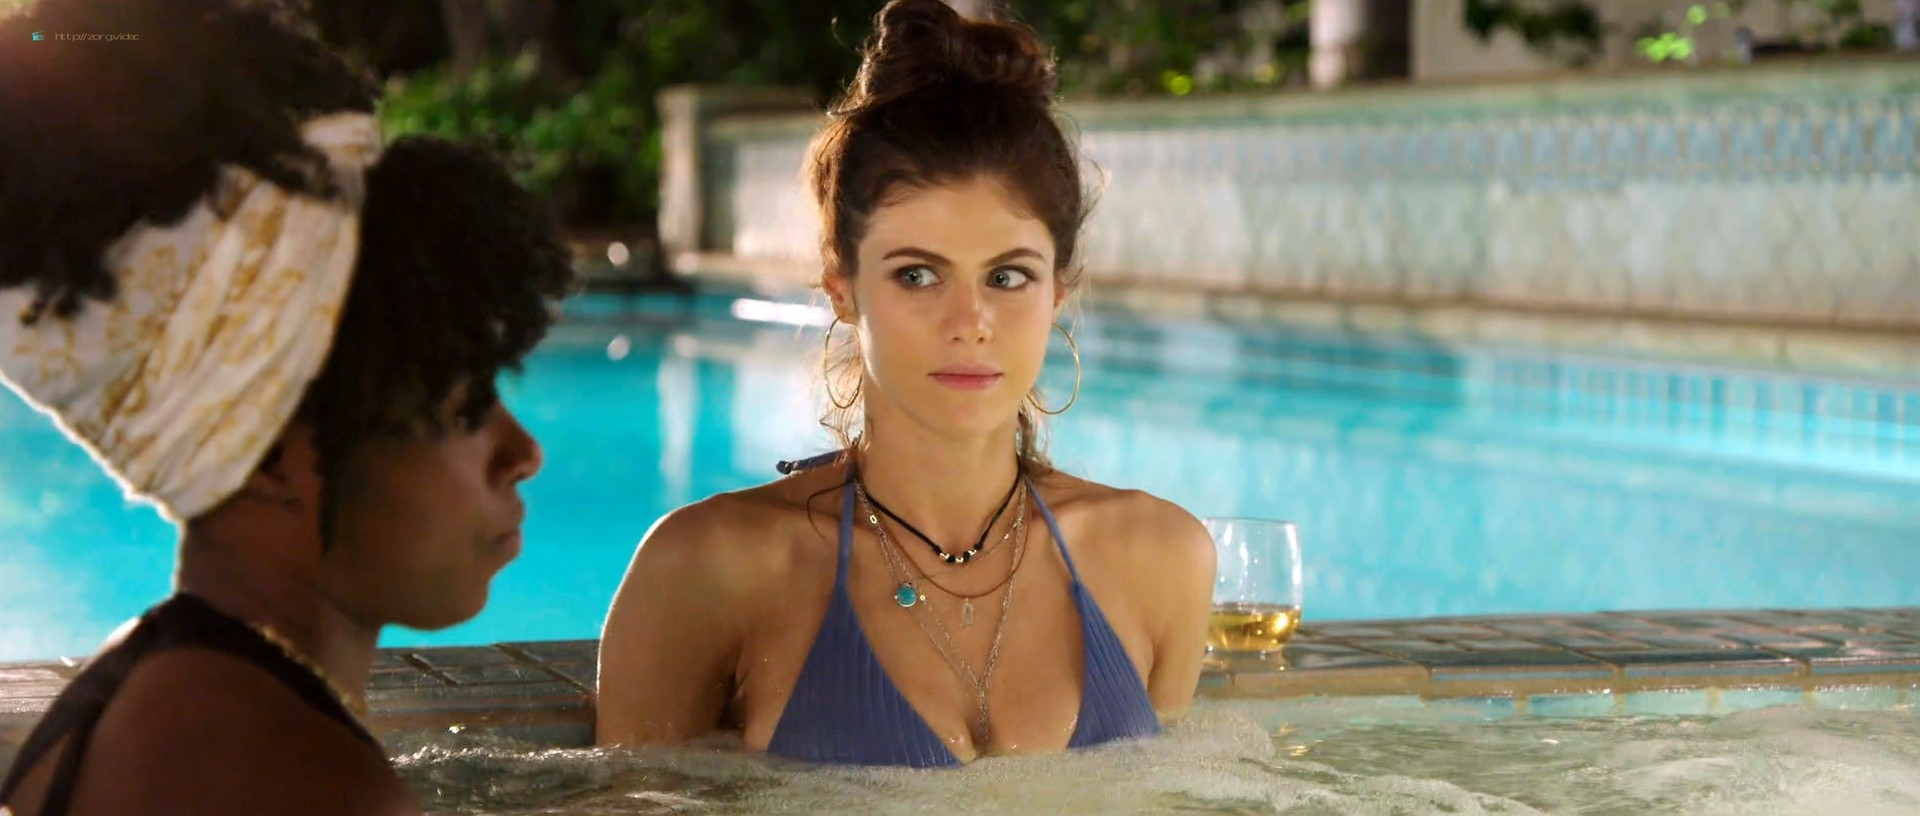 Alexandra Daddario hot busty in a bikini - Why Women Kill (2019) s1e1 HD 1080p Web (4)